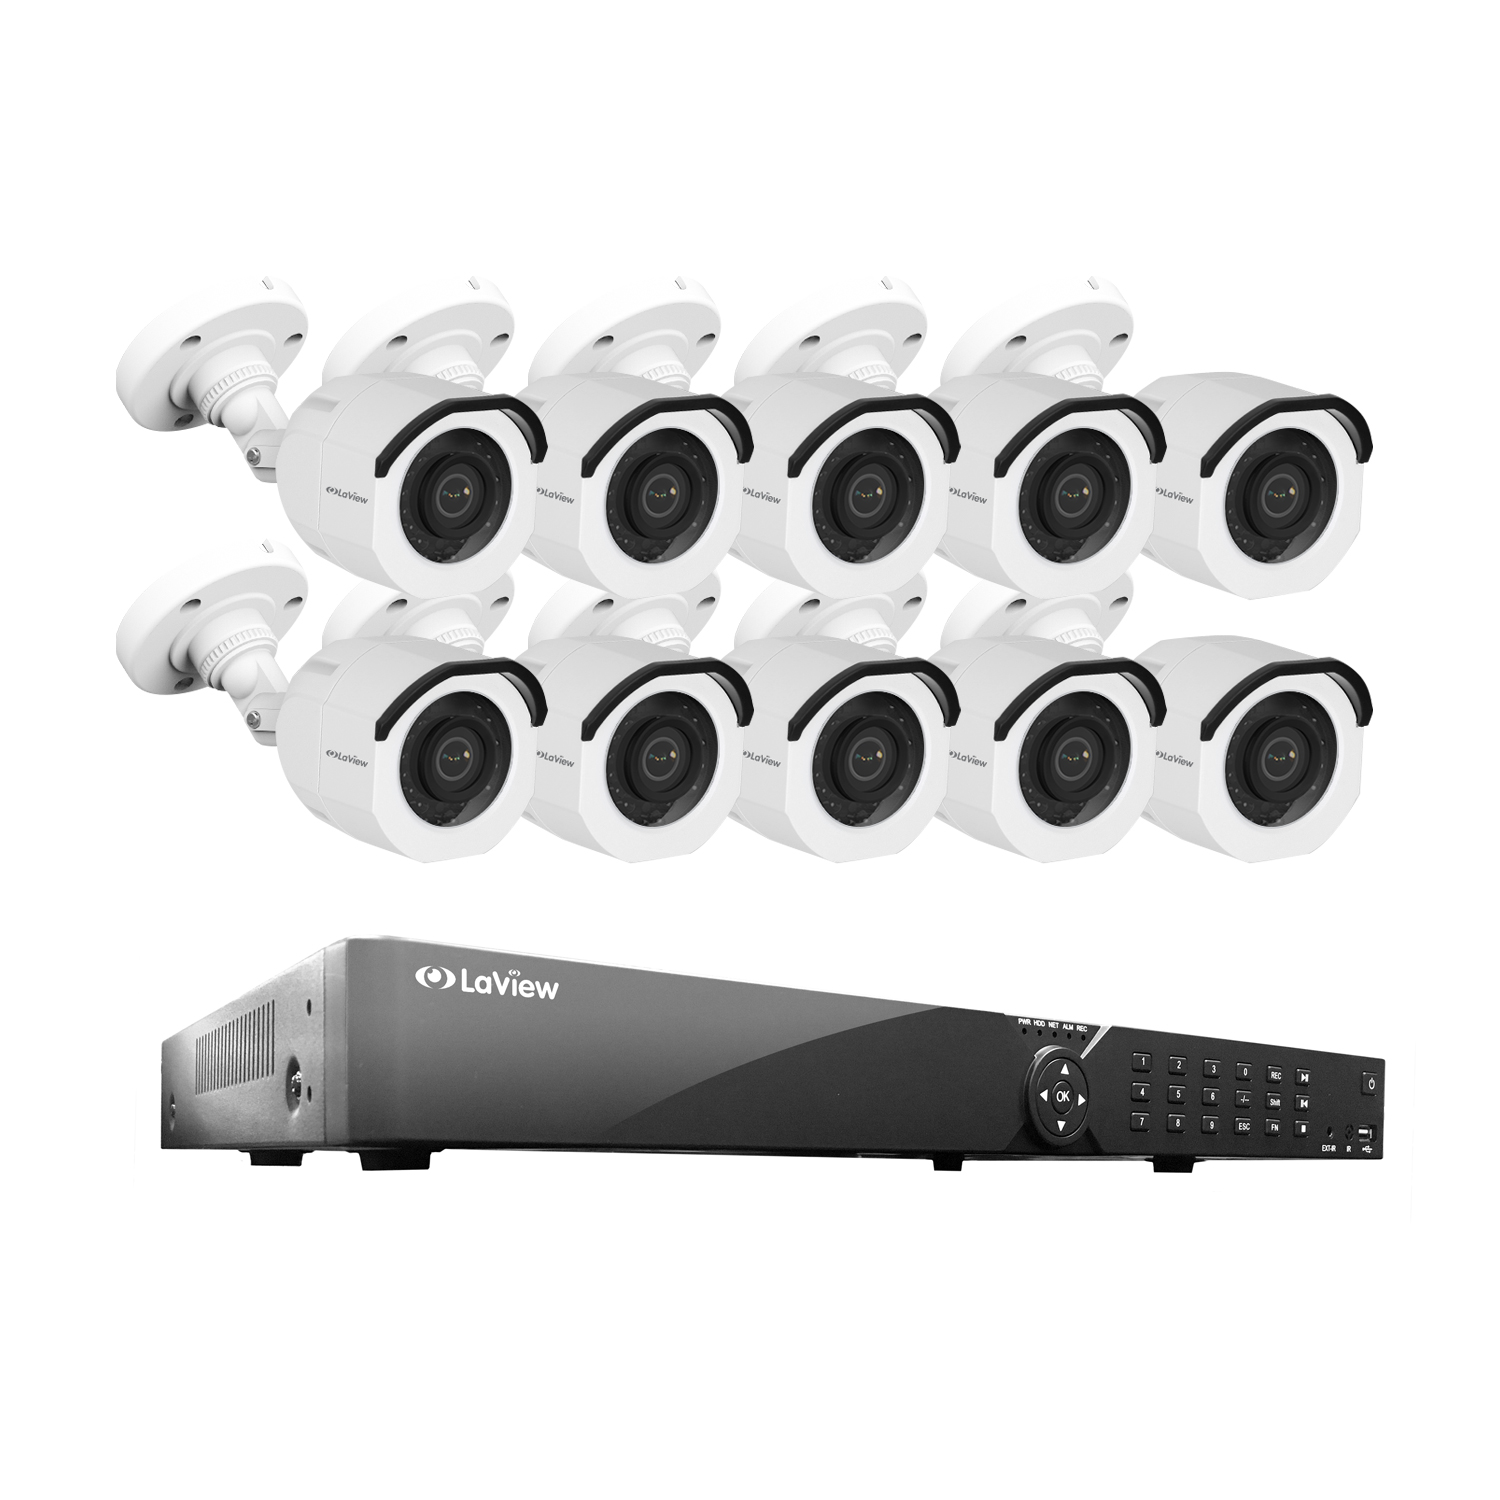 LaView 16 Channel DVR Security System W/10 HD 1080P Indoor/Outdoor Surveillance Cameras- Built in Storage 2TB HDD, Motion Detection, Remote View, Instant Mobile Notifications/Alerts